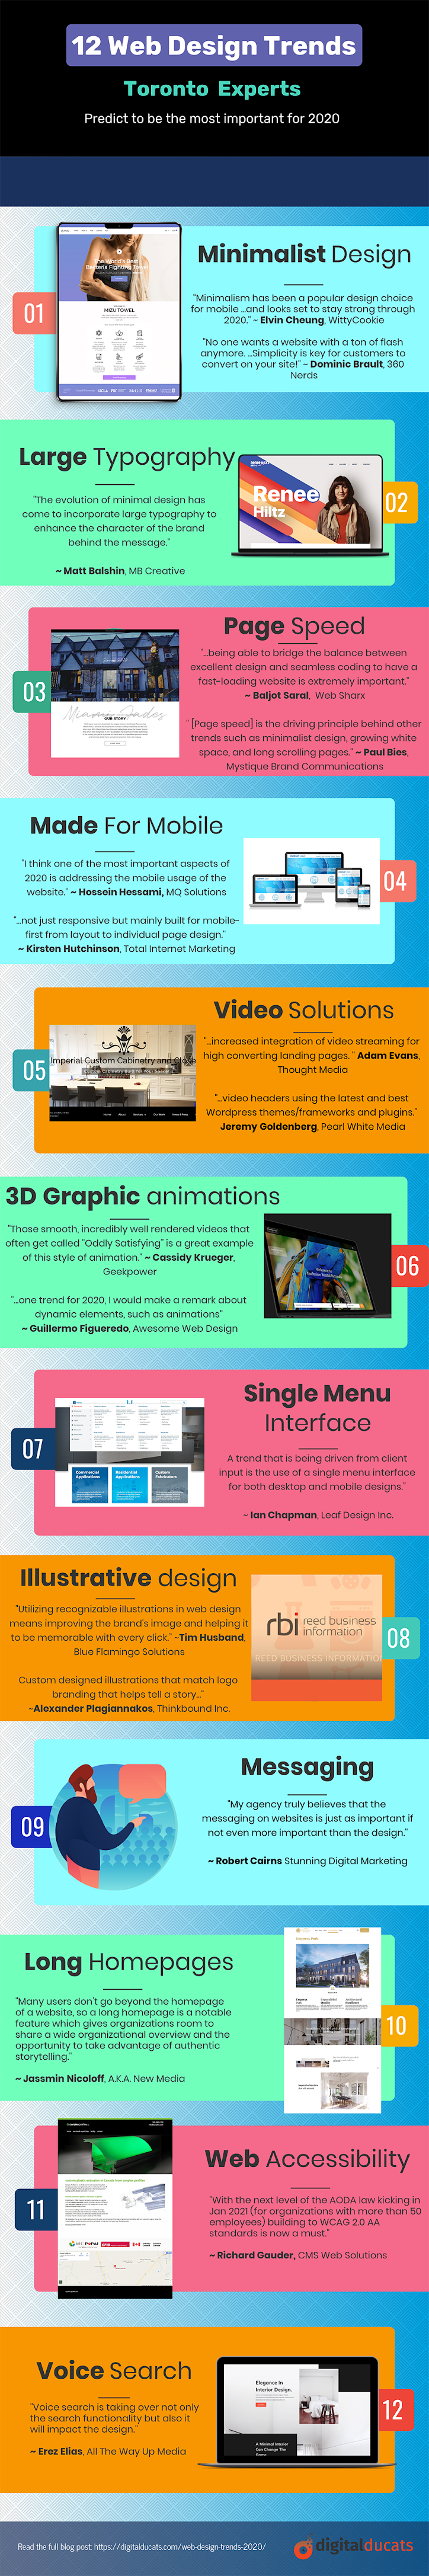 12 Web Design Trends For 2020 By Toronto Experts #infographic